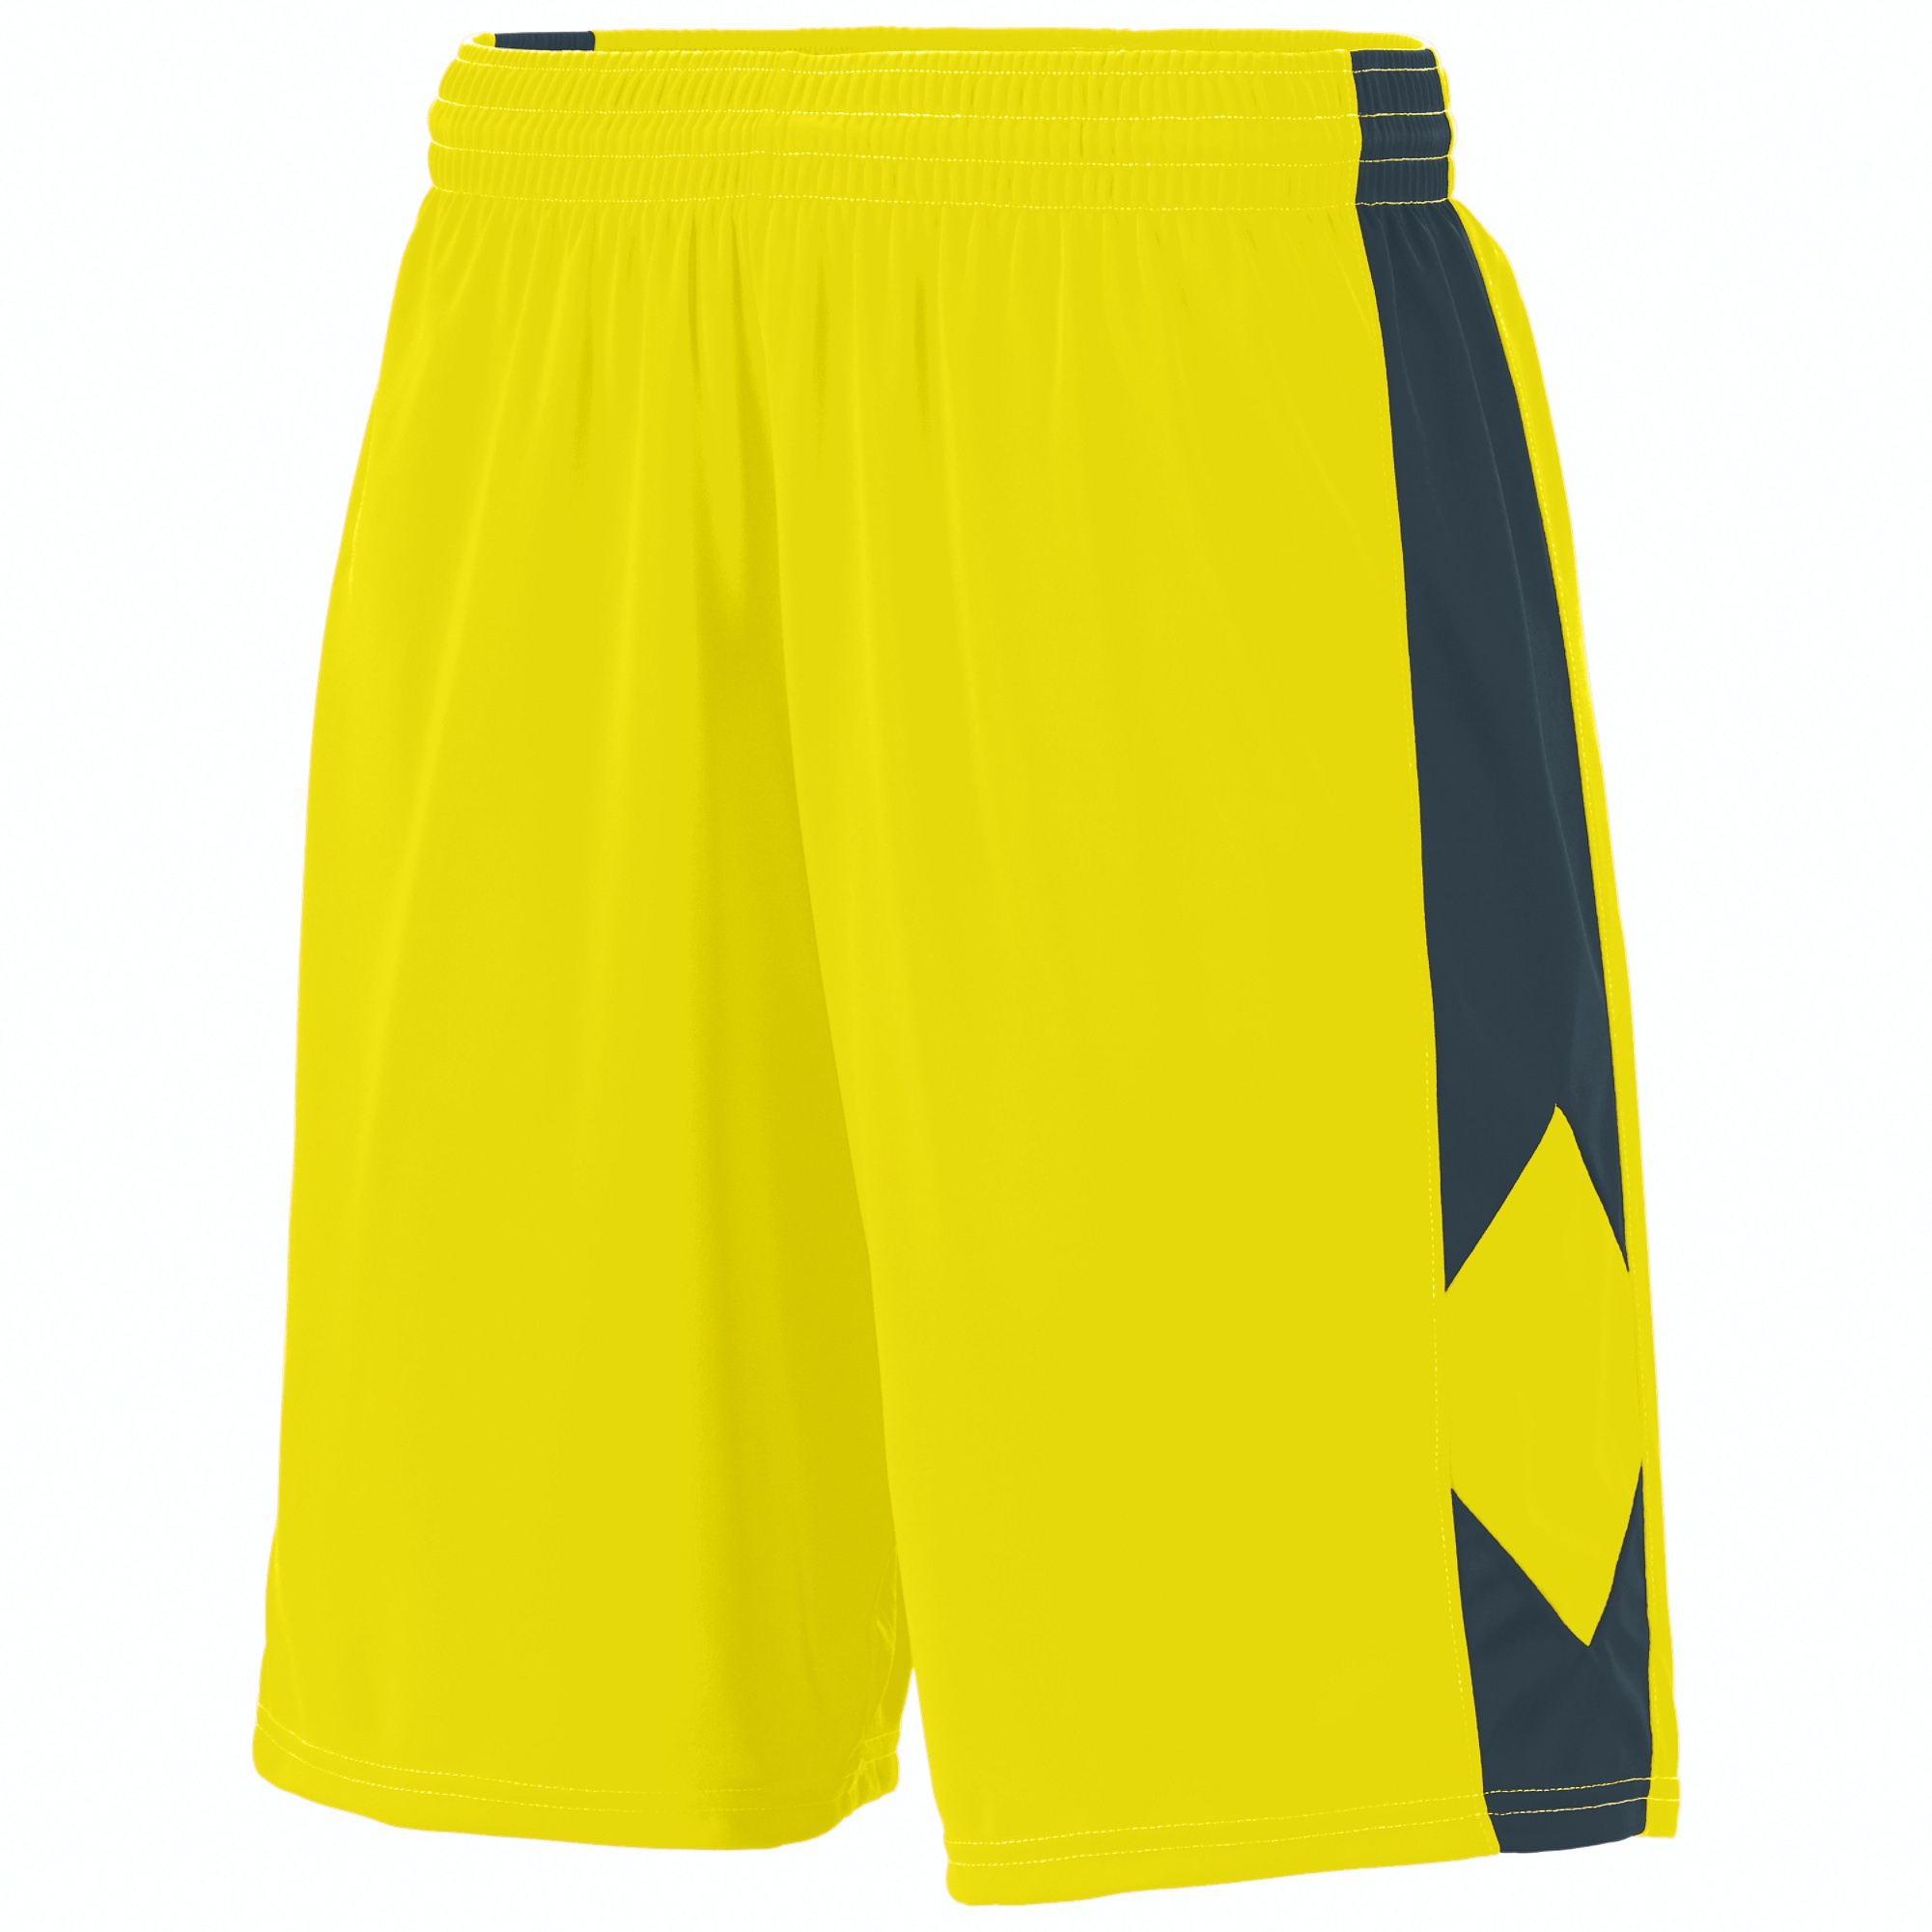 Augusta Sportswear L Men's Block Out Short White/White 1715